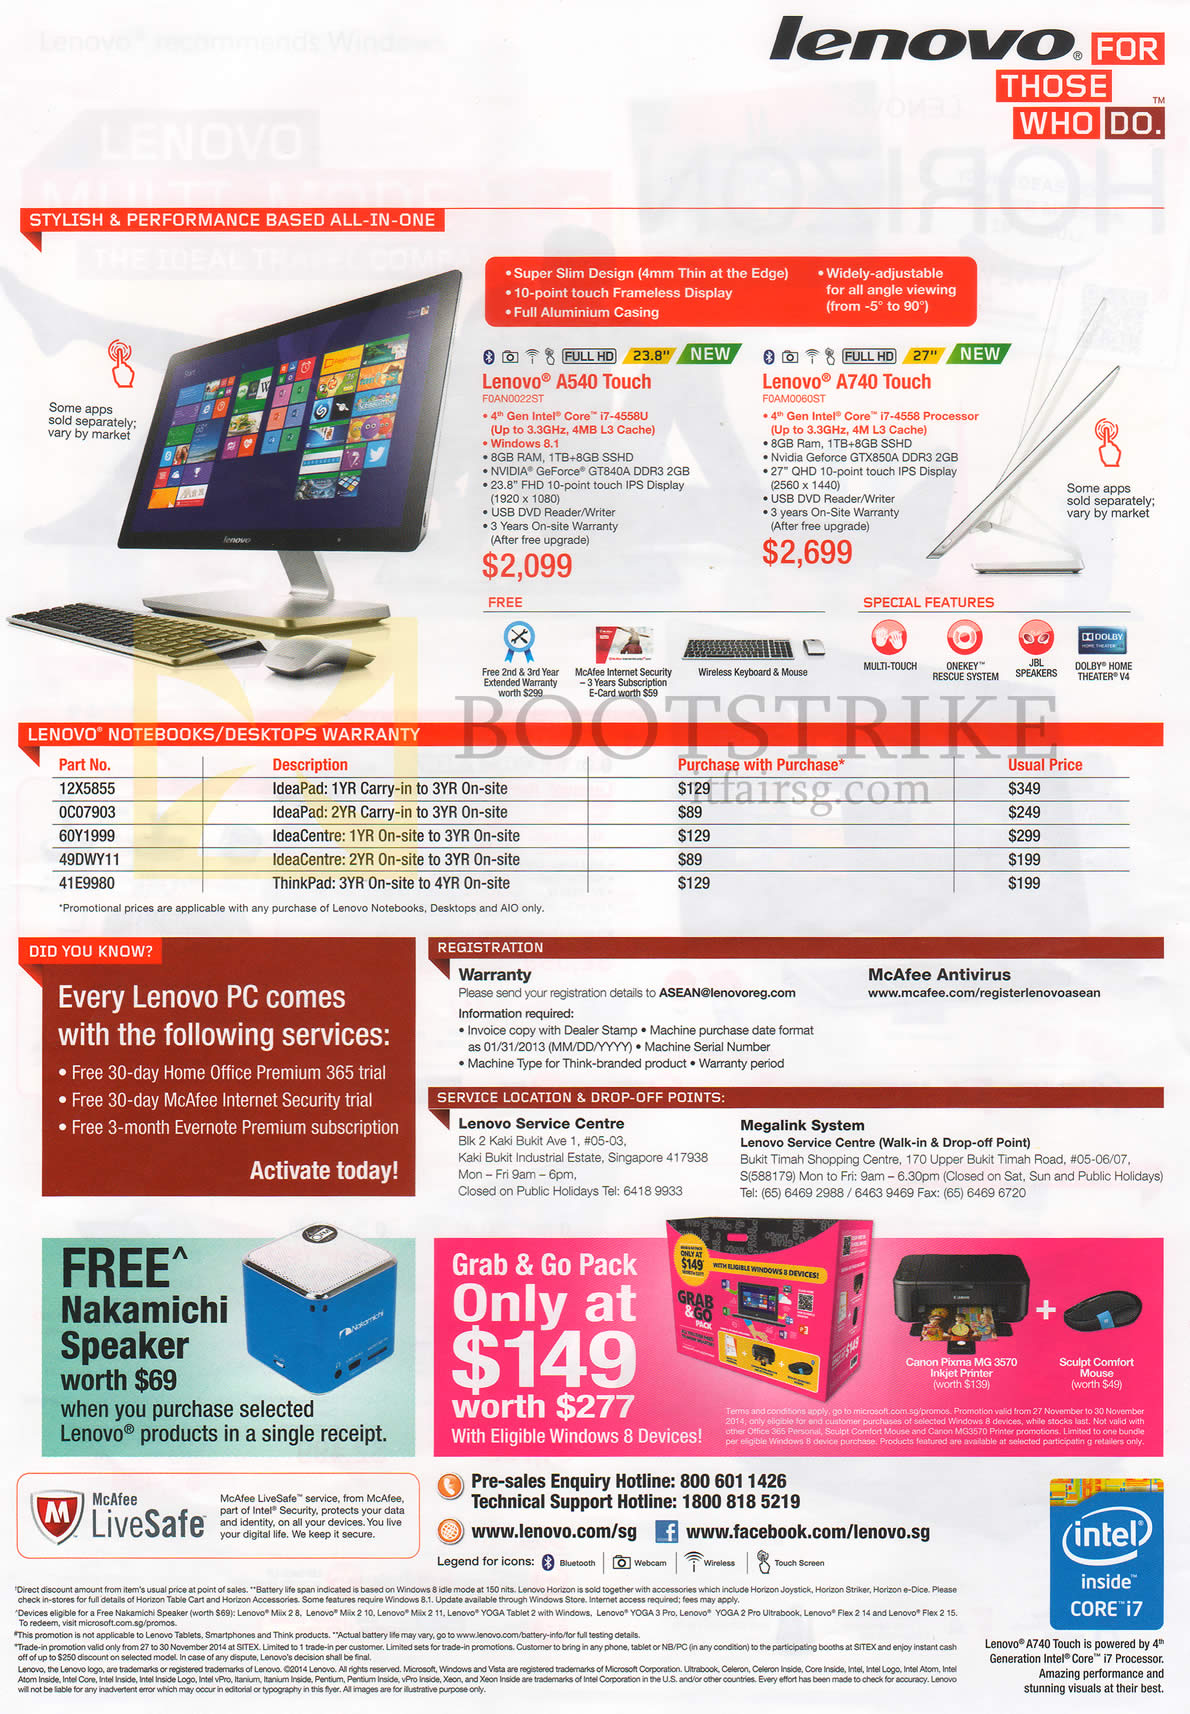 SITEX 2014 price list image brochure of Lenovo AIO Desktop PCs A540 Touch, A740 Touch